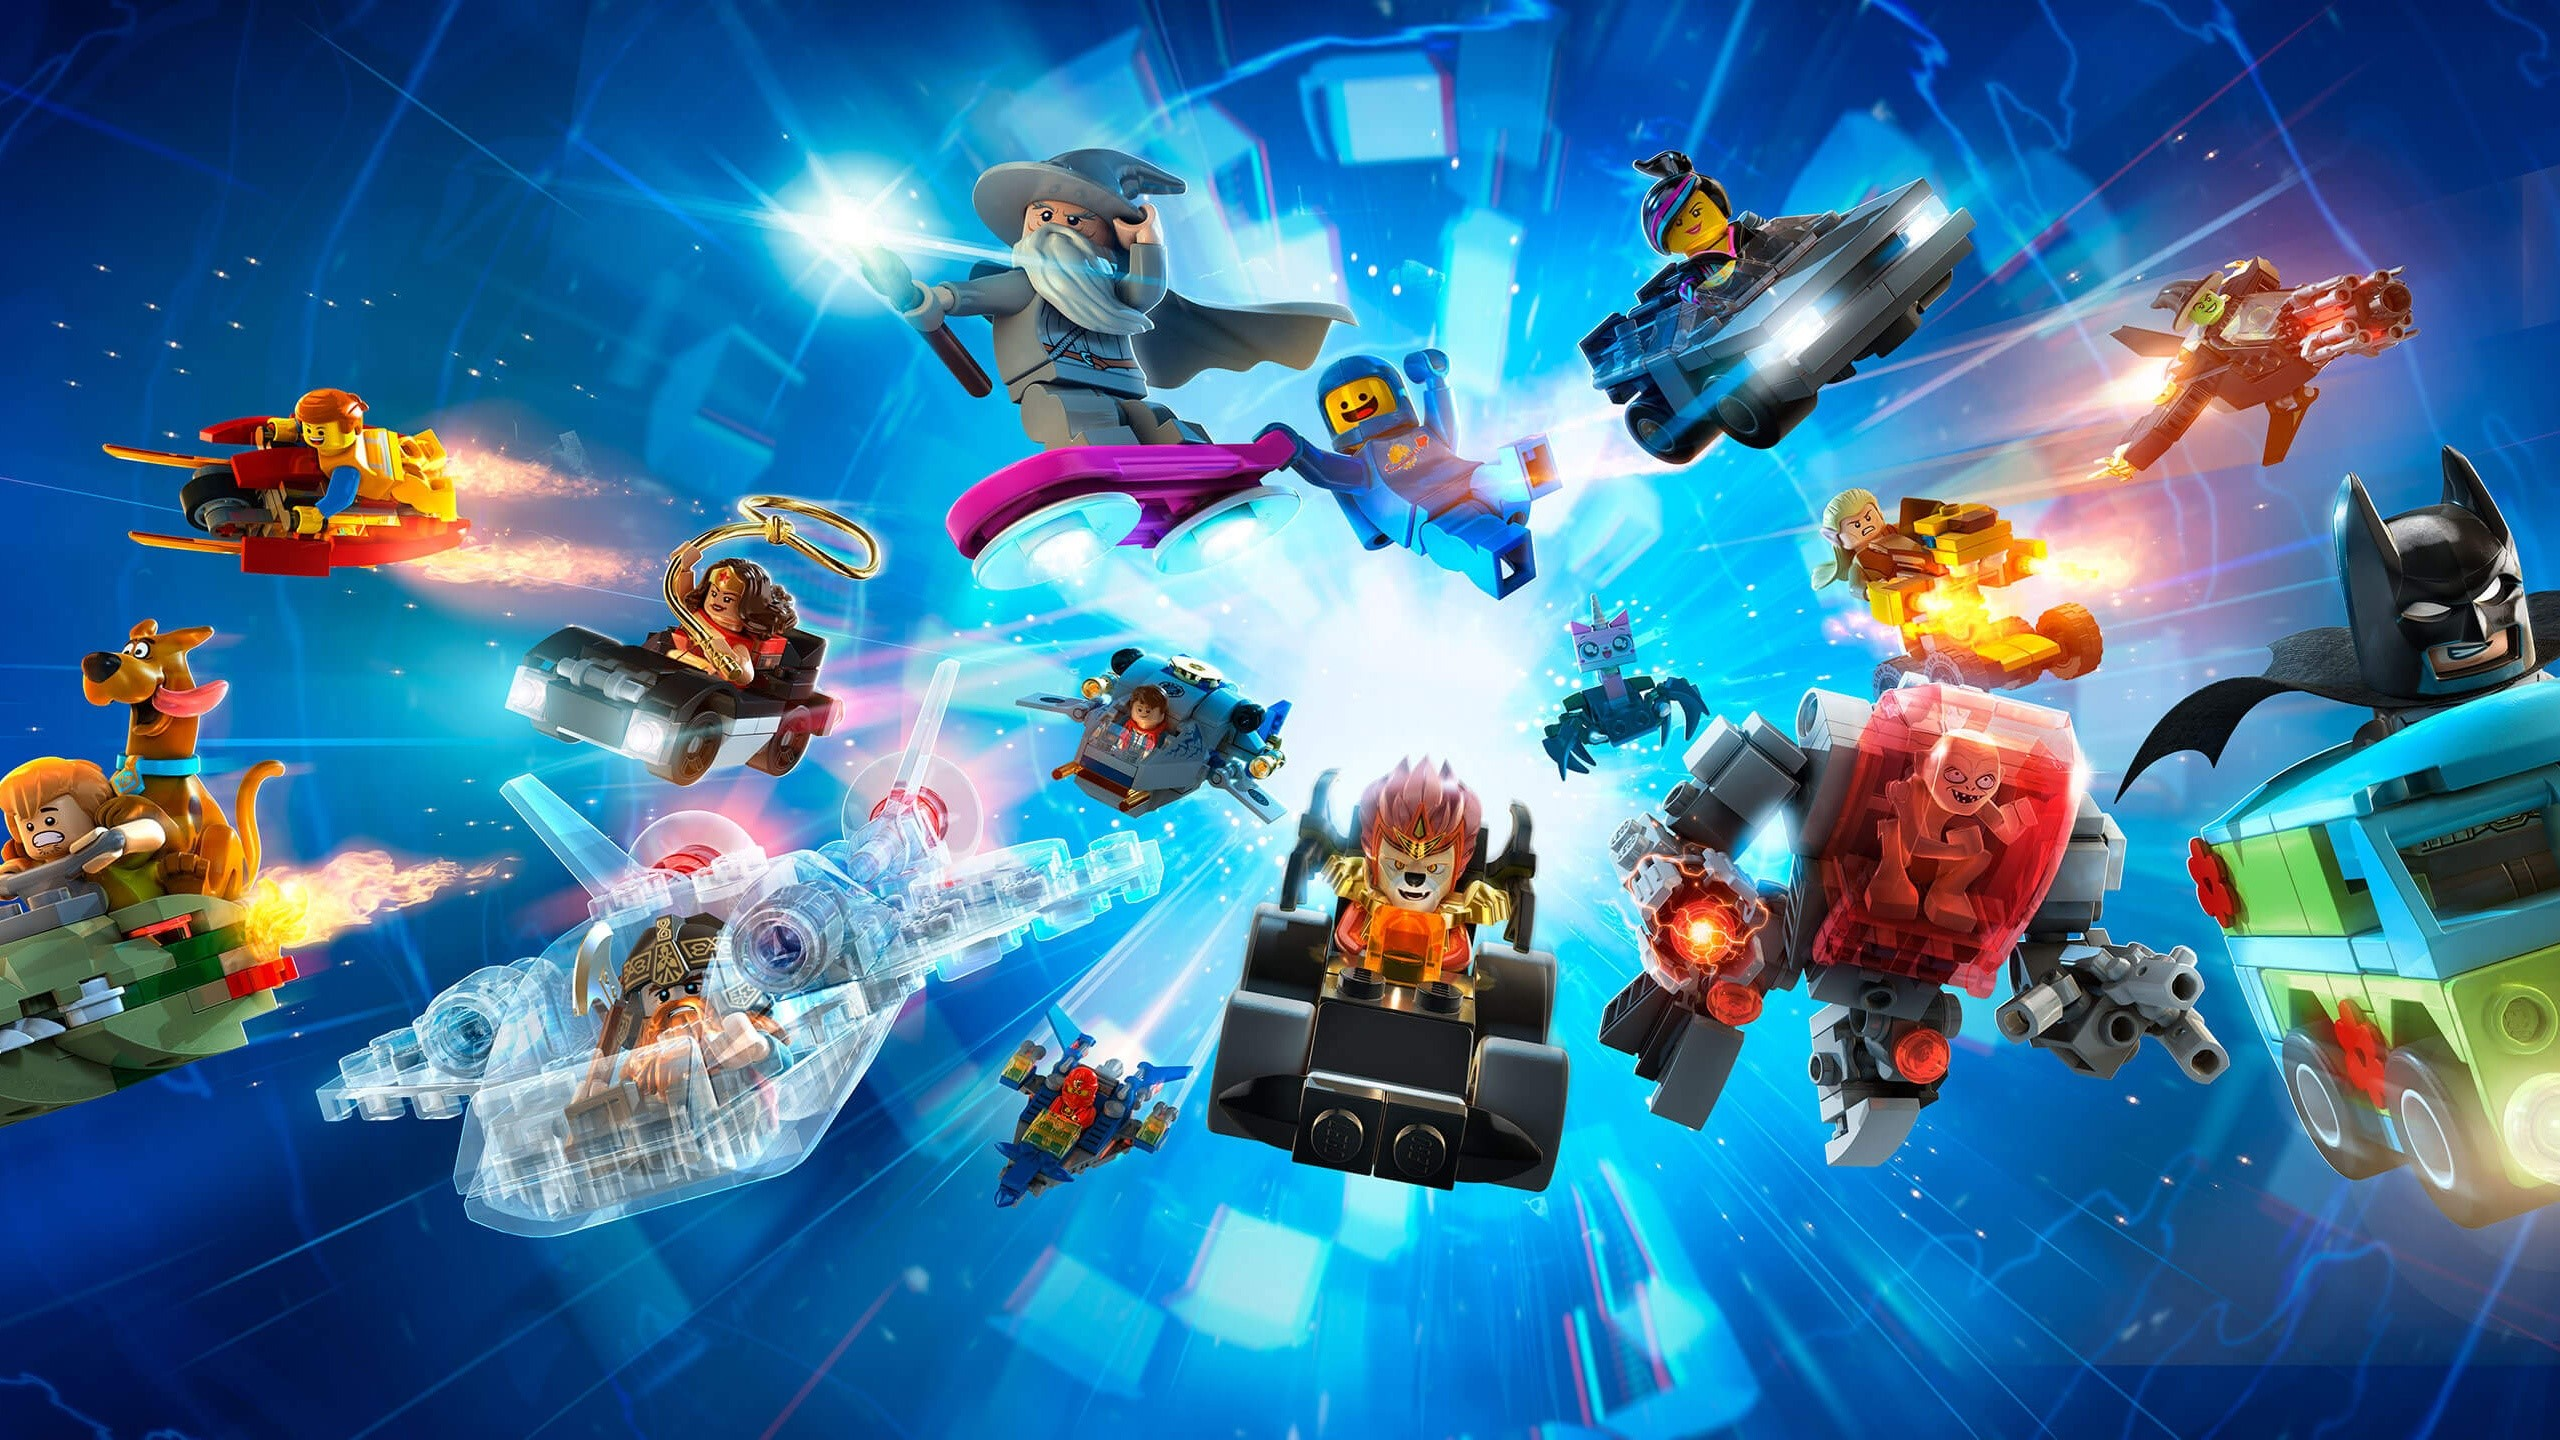 Wallpaper All the characters of Lego Dimensions